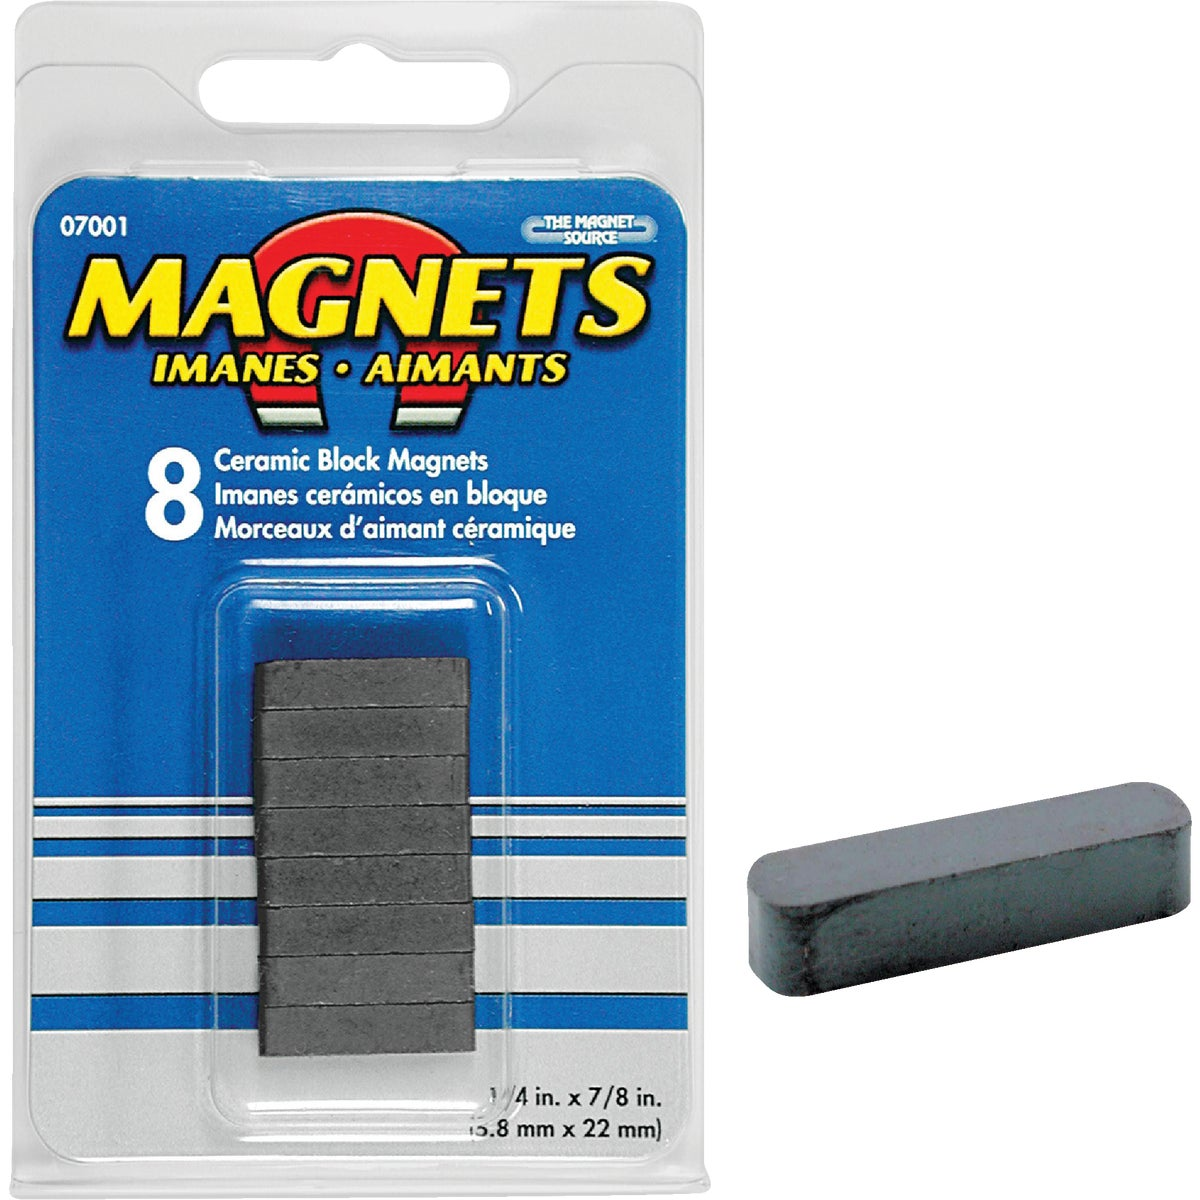 CERAMIC MAGNETIC BLOCK - 07001 by Master Magnetics